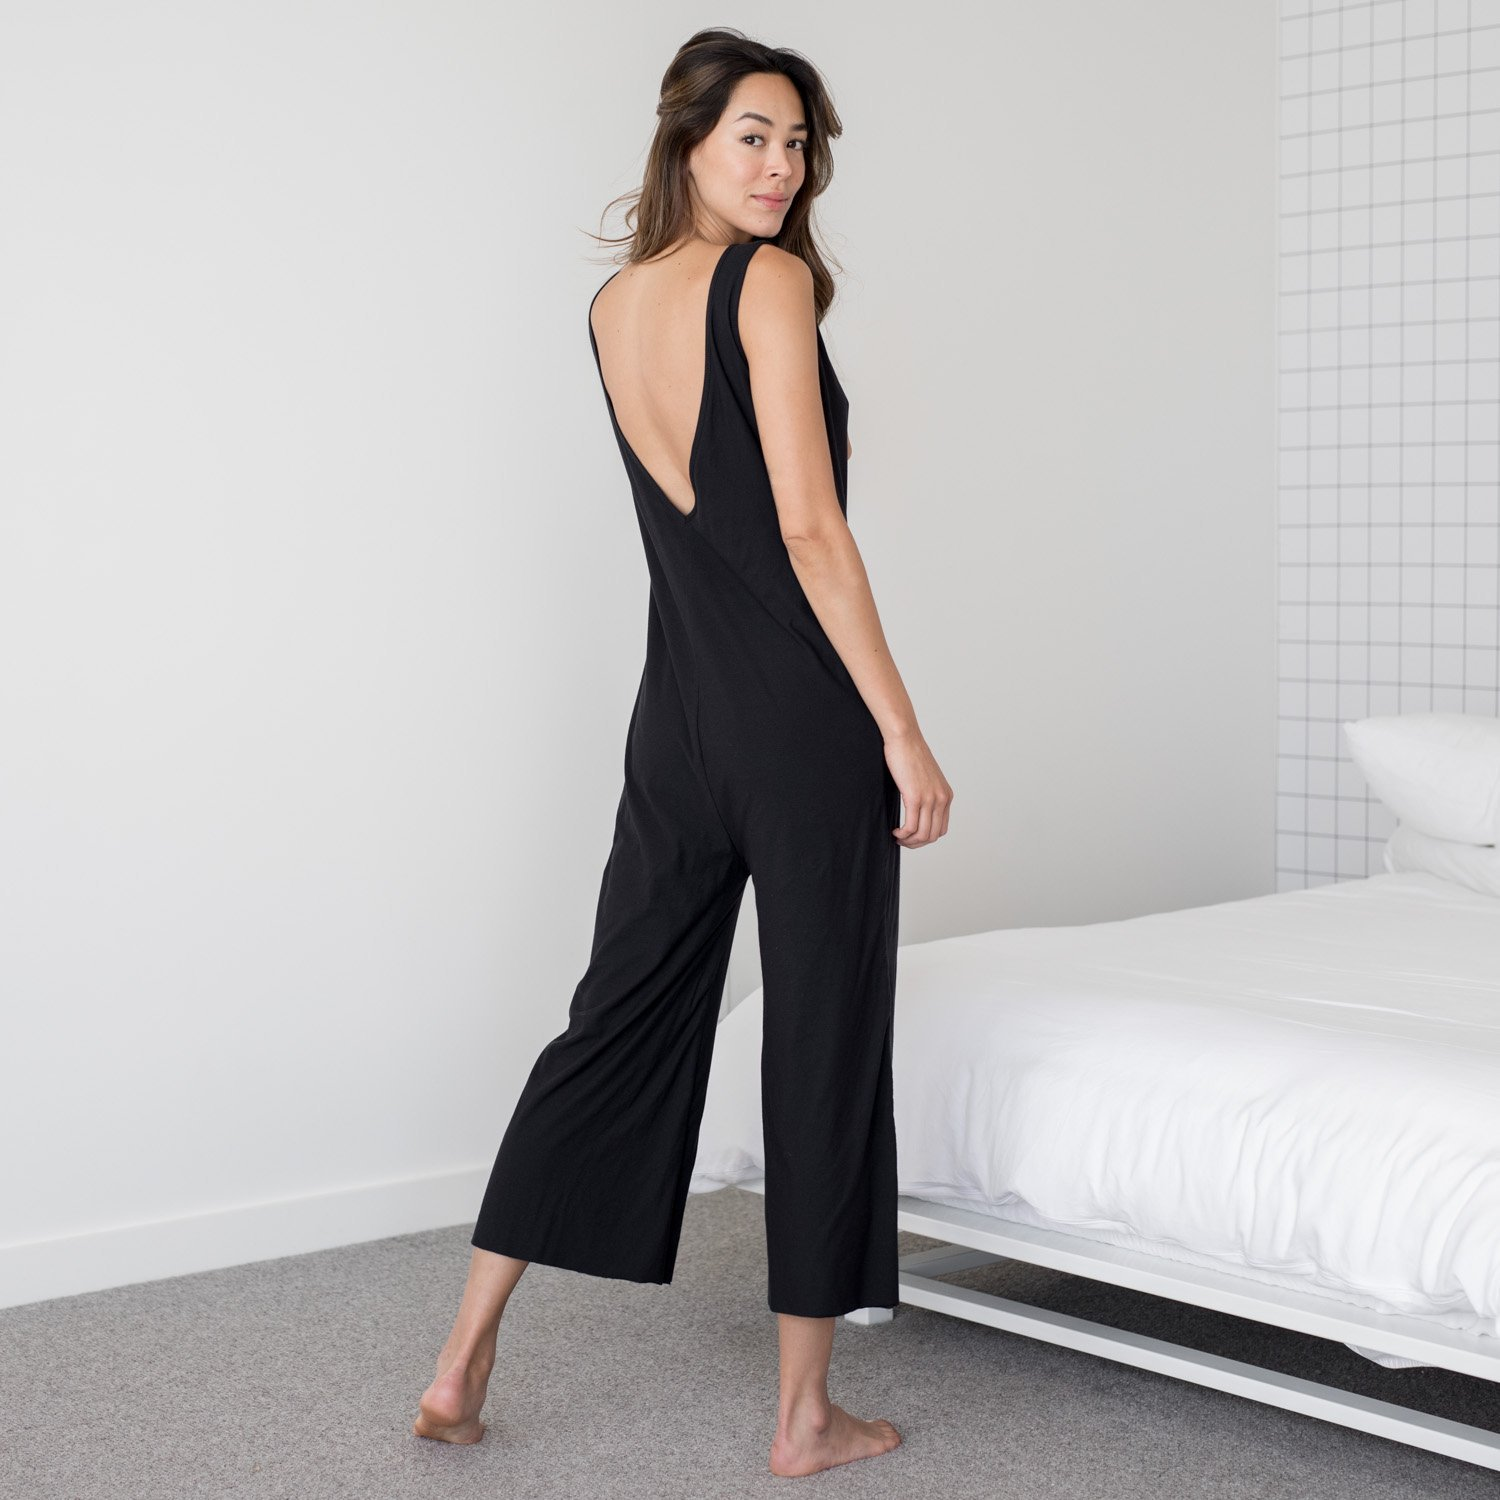 Lunya Cool Romper - I'm turning 25 this month and I think it's time I get myself some proper pajamas instead of the baggy stained t-shirt and underwear combo I sport every night. This romper is supposed to be incredibly comfortable and keep you cool all night long, which is key for a hot sleeper like me. I also love that the fabric is antimicrobial which means I can wear it all week before washing! #lazy